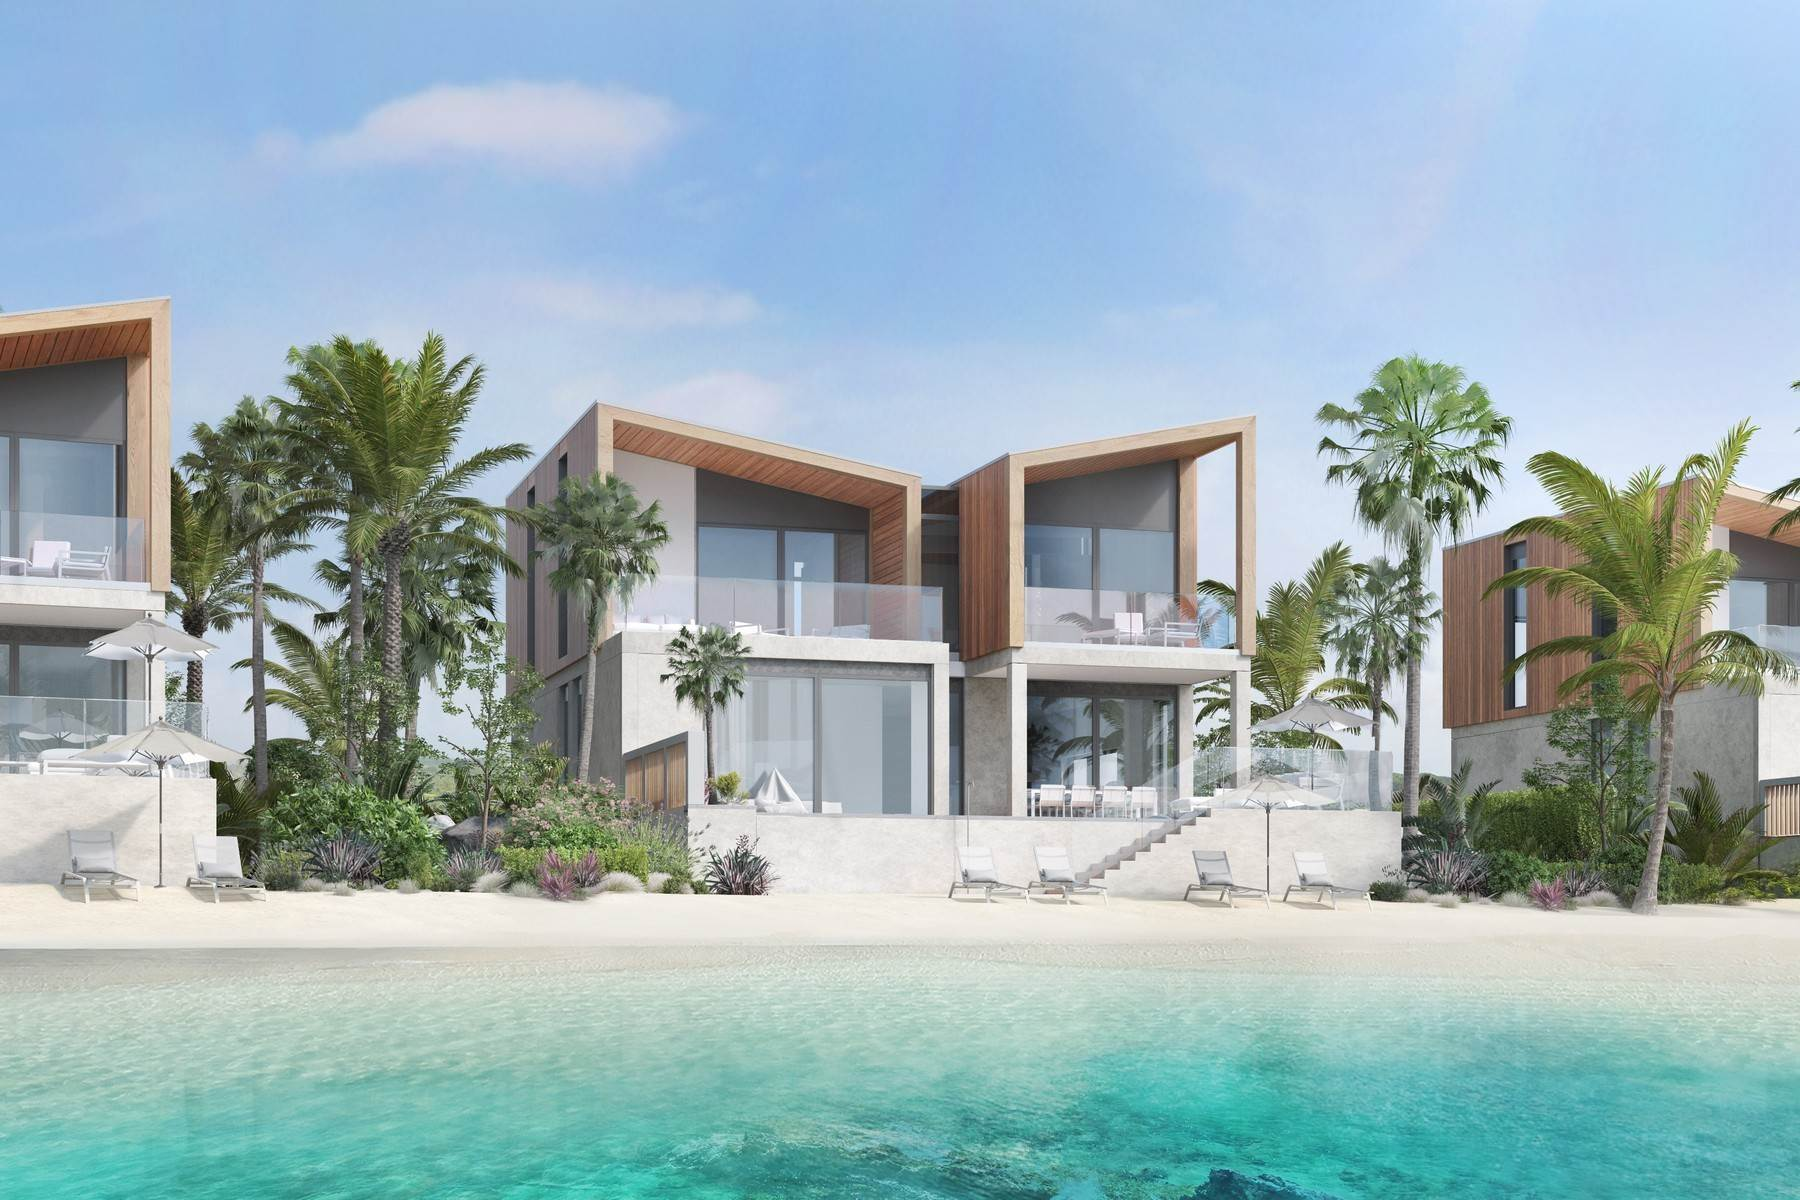 5. Single Family Homes for Sale at SOUTH BANK - THE LAGOON II - LAGOON VILLA 18 South Bank, Long Bay, Providenciales Turks And Caicos Islands